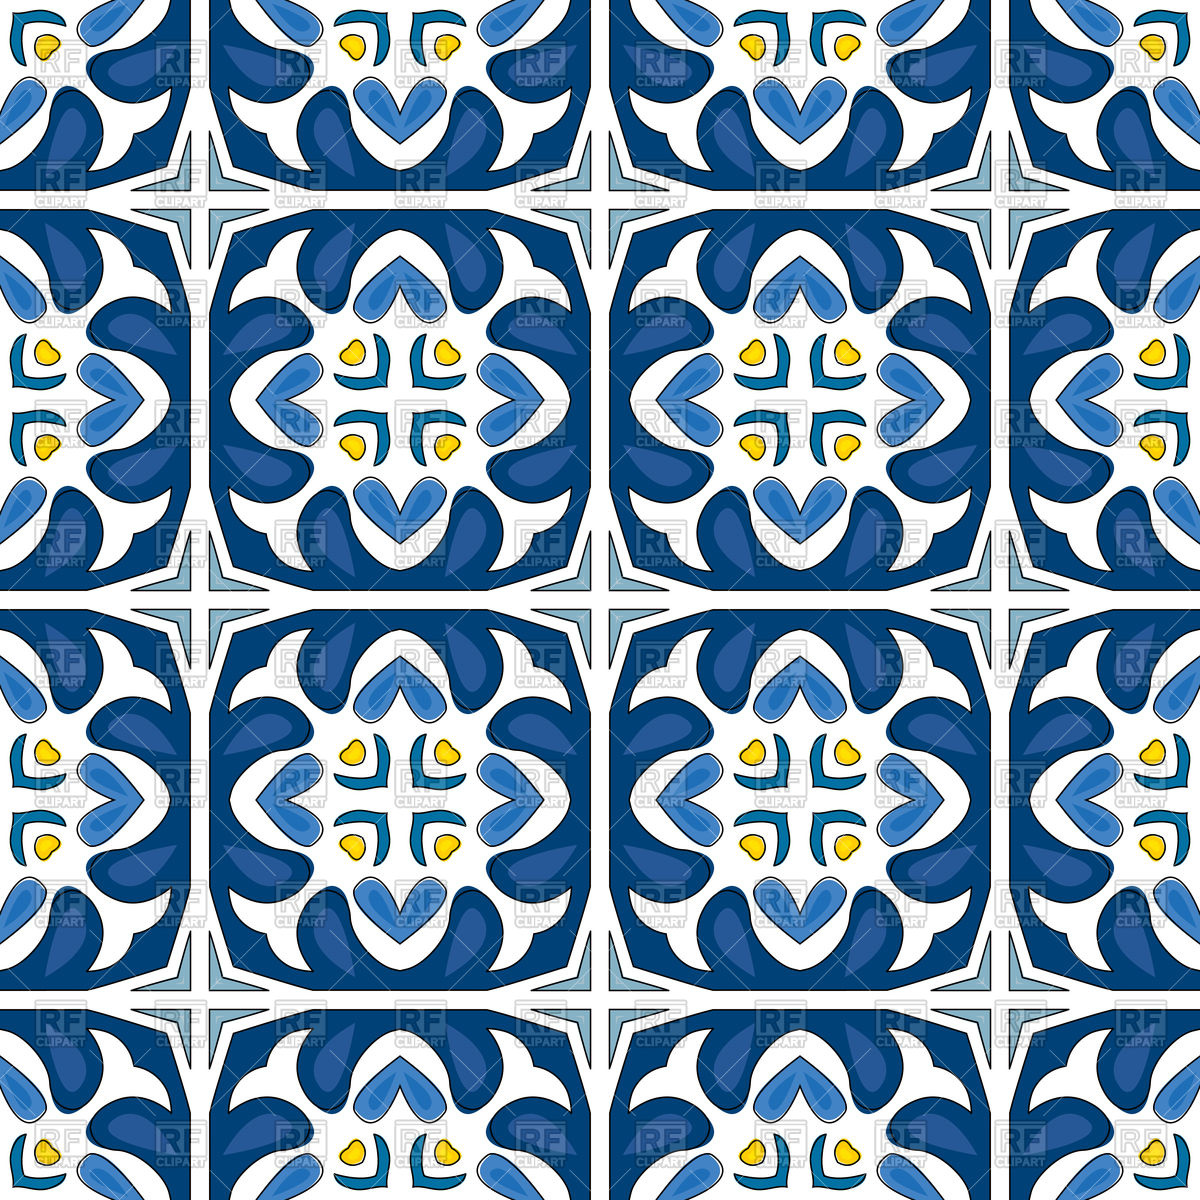 Portuguese tiles in blue hues Vector Image #130646.